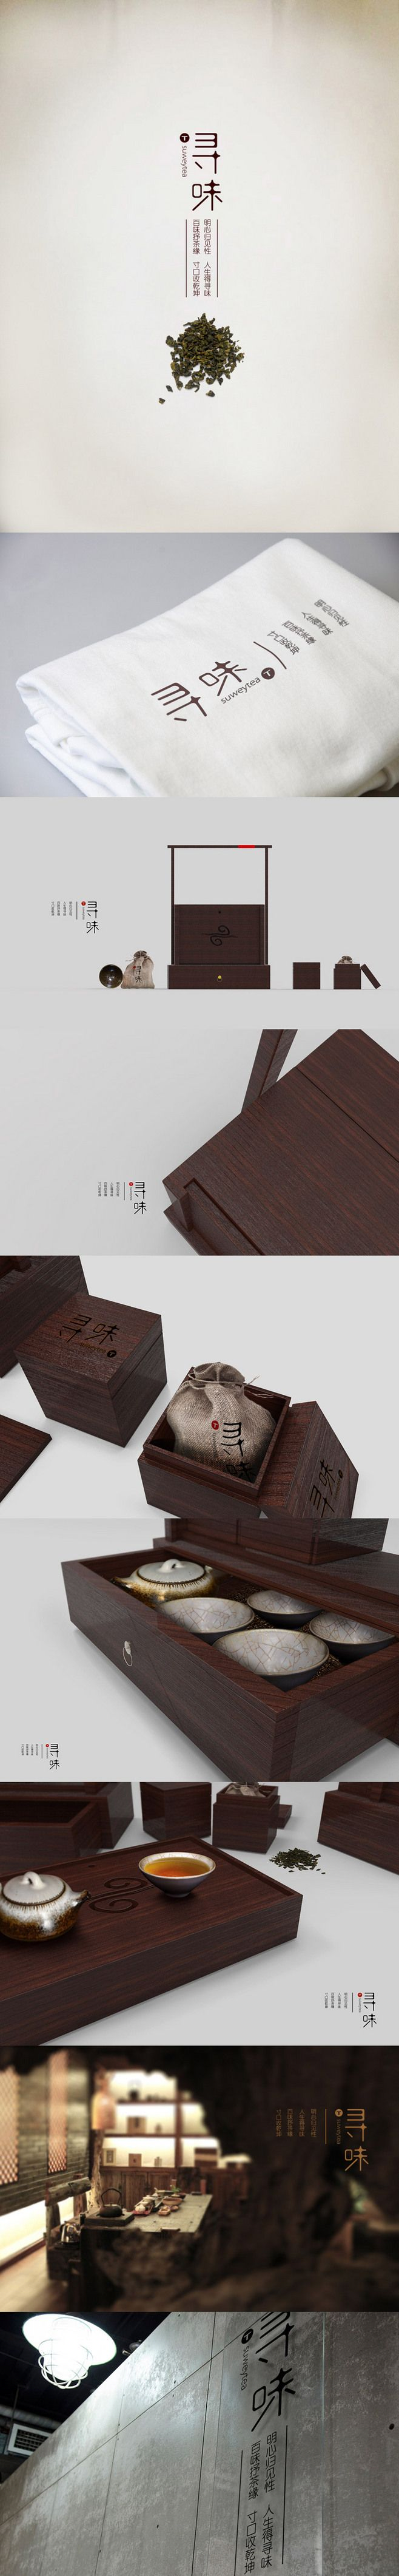 packaging / package design | 尋味 SuwayTea Traditional Tea Gift Box Packaging Design